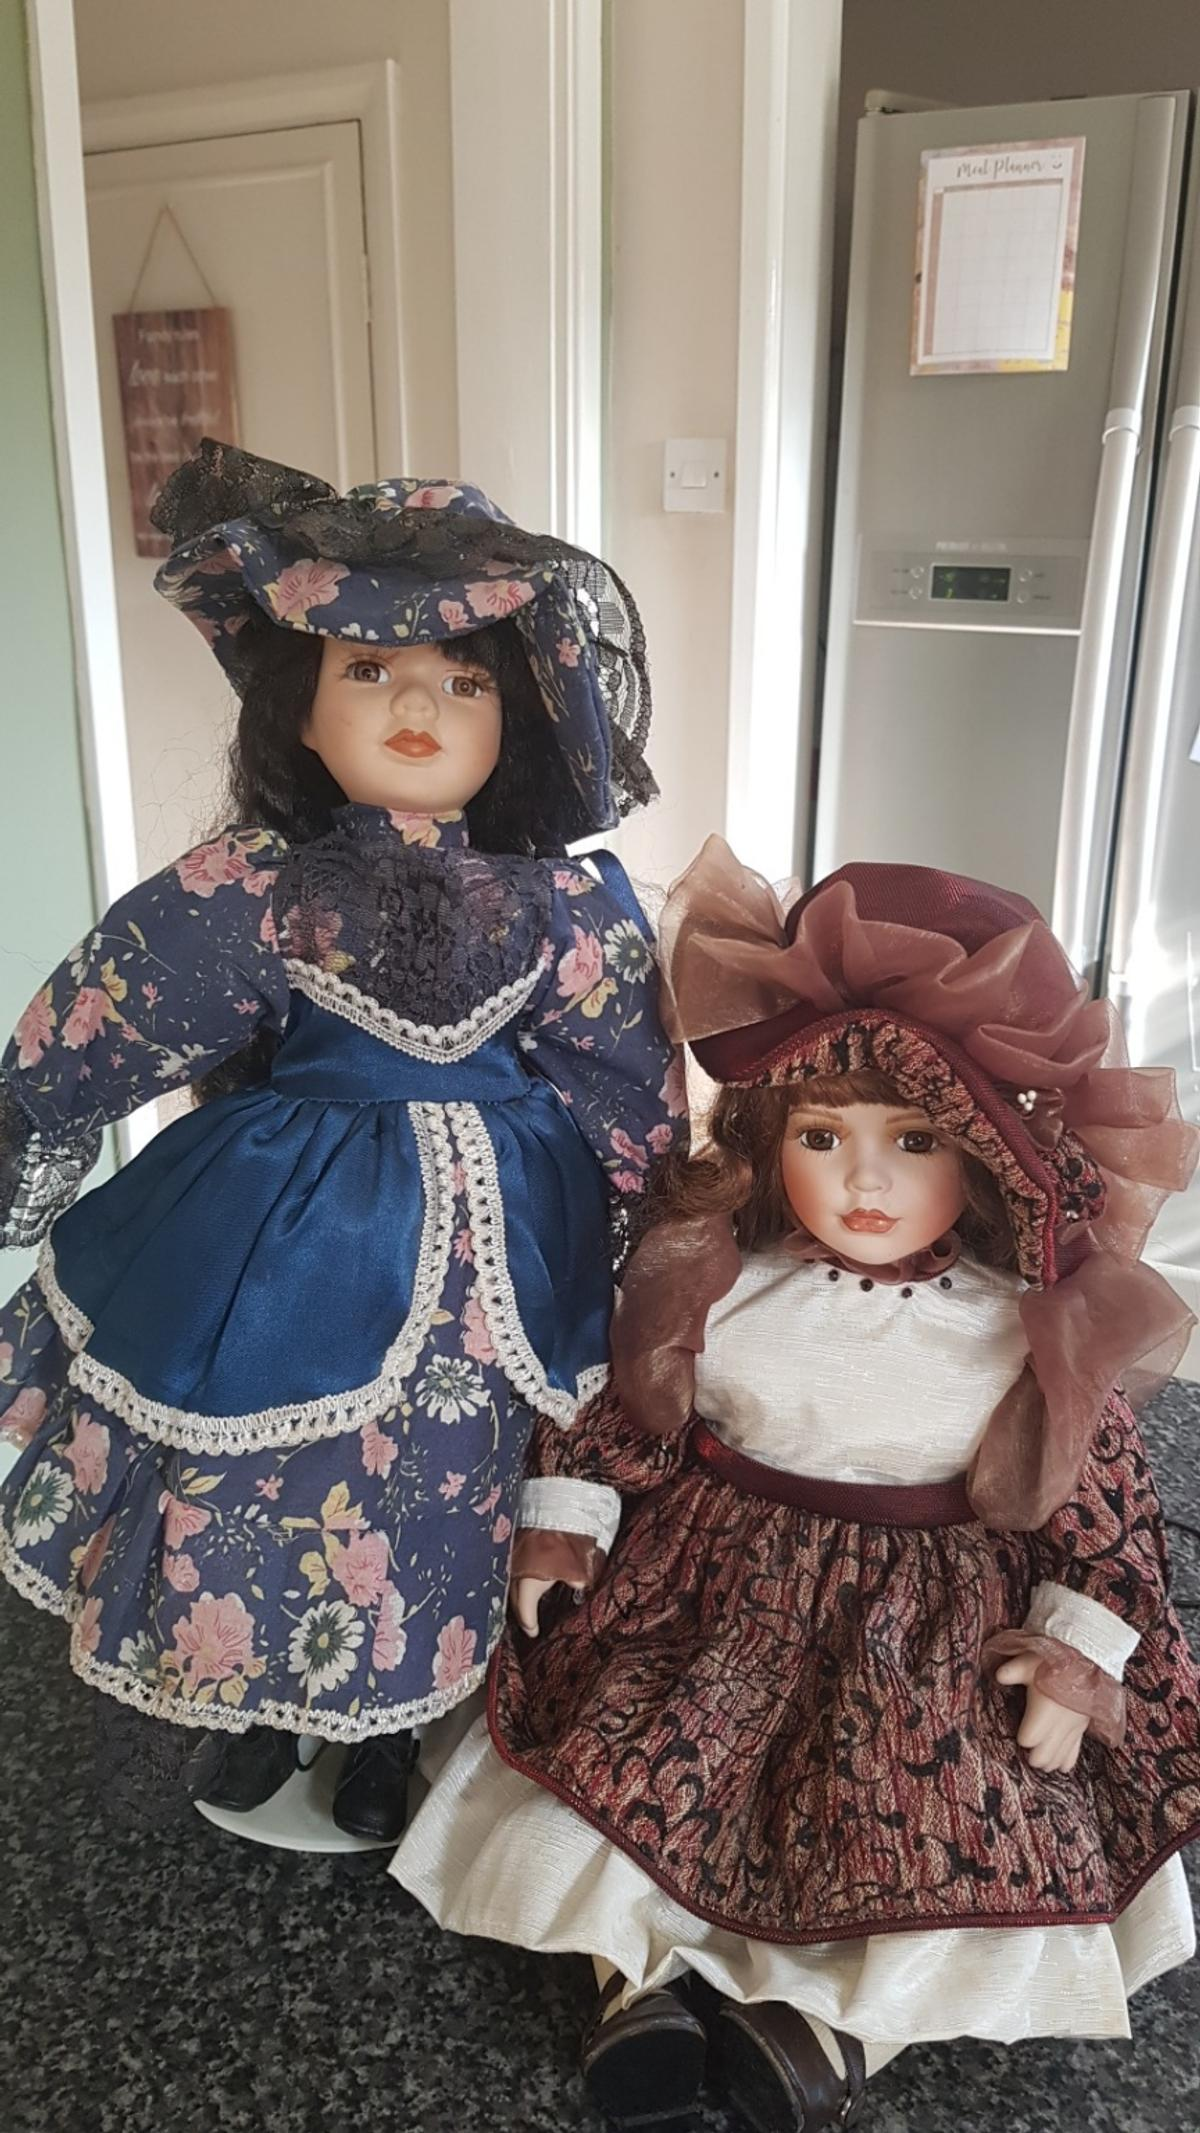 Both in excellent condition. The young lady in blue is named Alice.